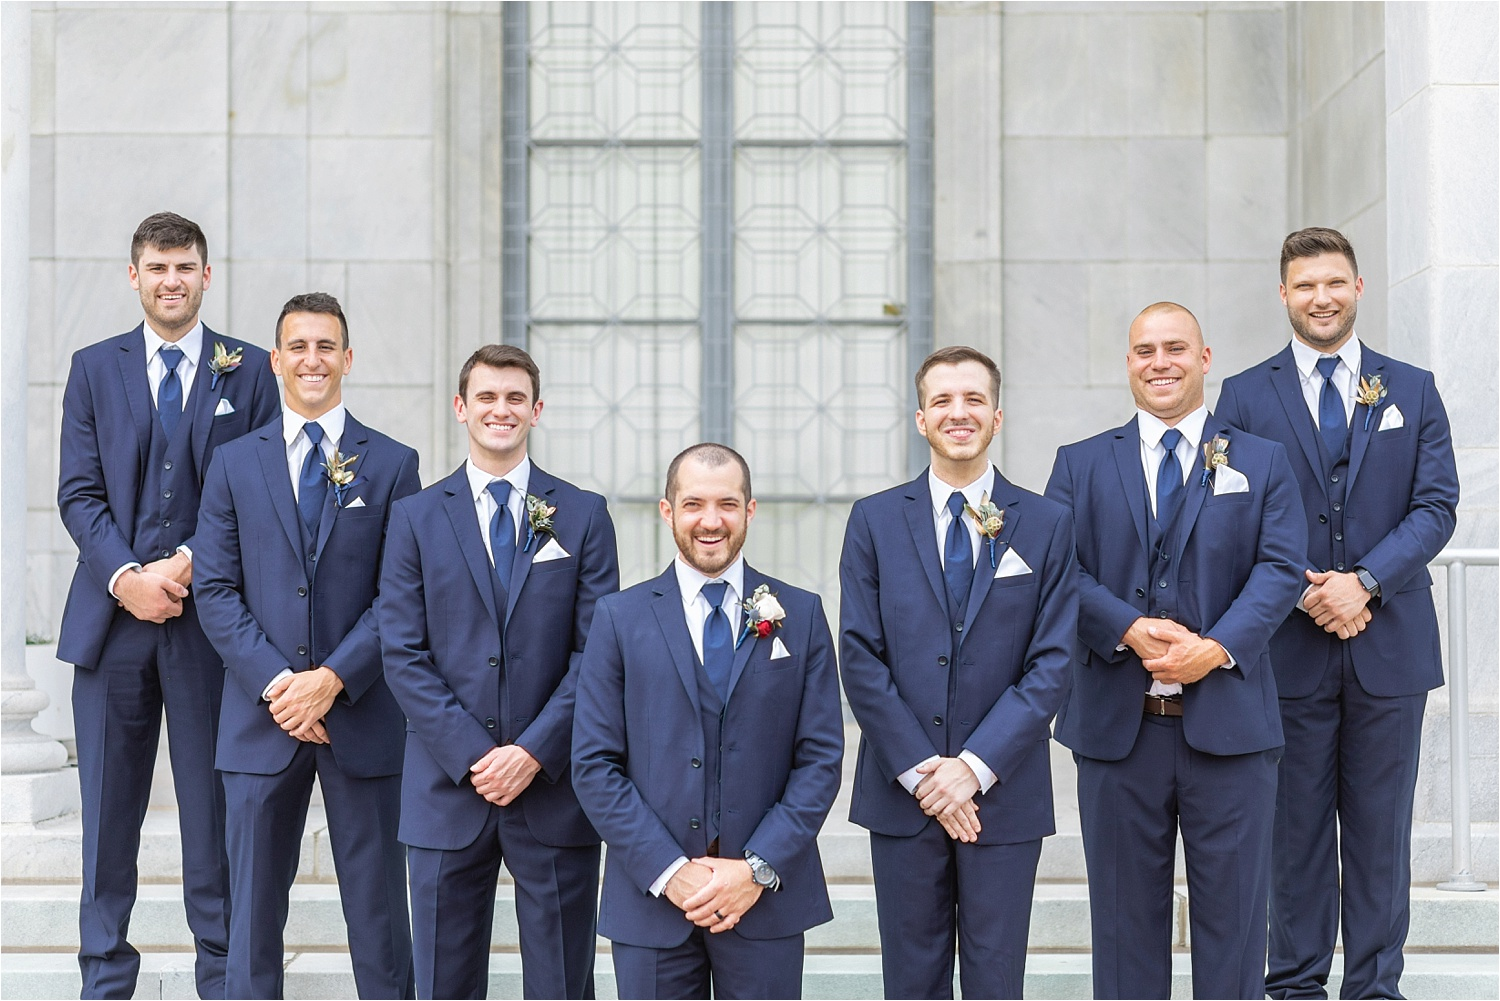 Guys looking classy in these navy suits from Rondonelli Tuxedo Company. Navy is always a great option & looks especially good with brown accents!